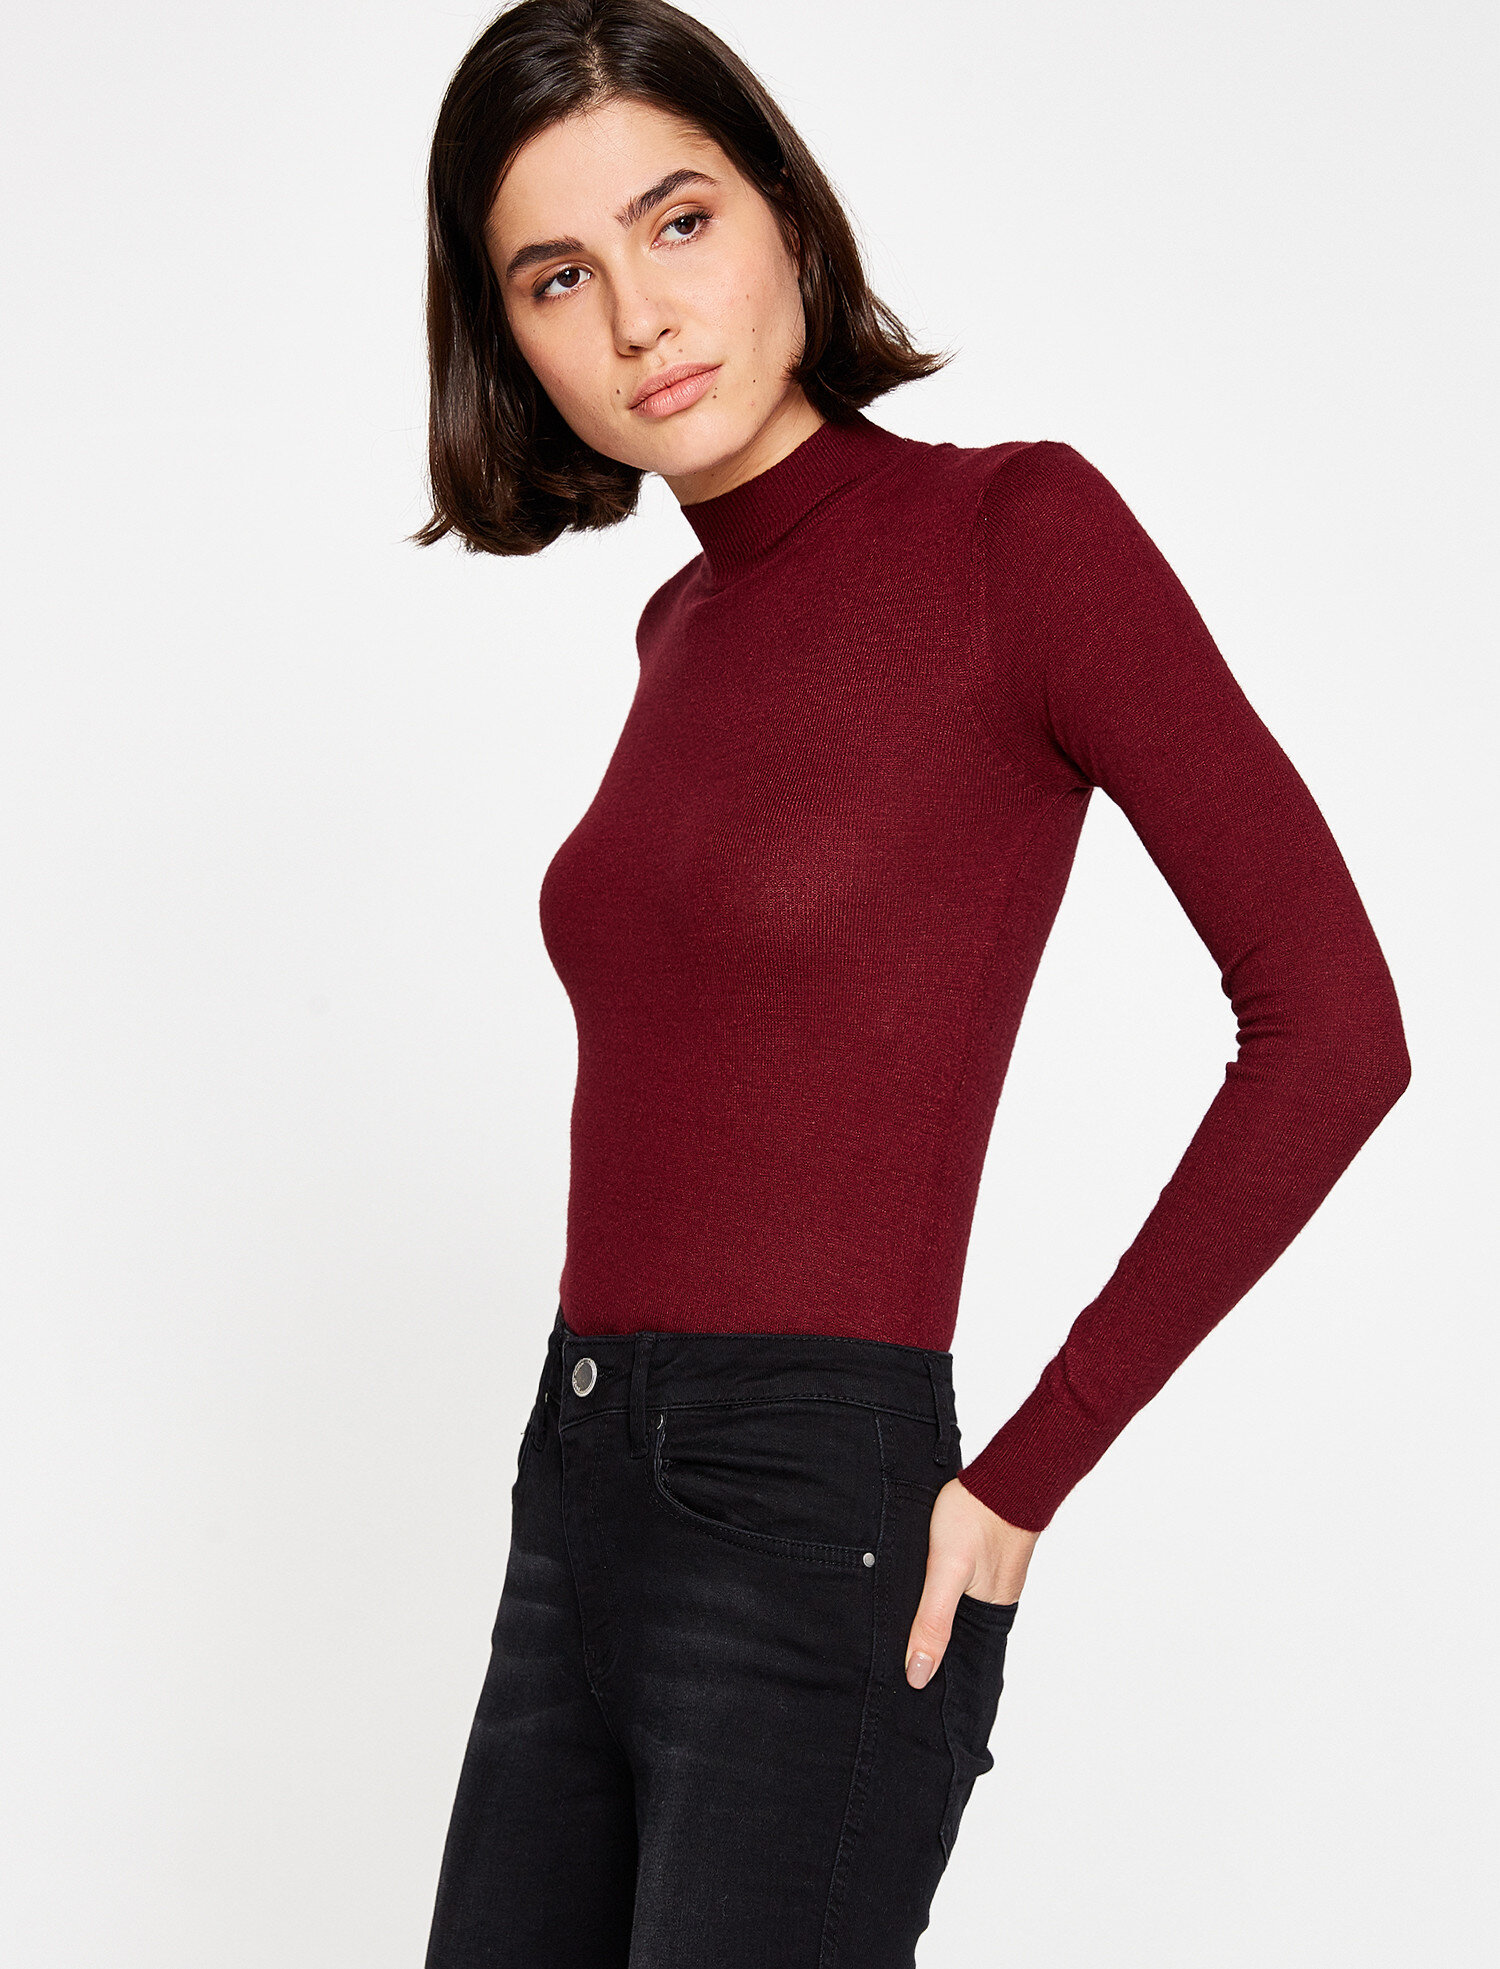 high neck sweater. pic 1; pic 2 ...